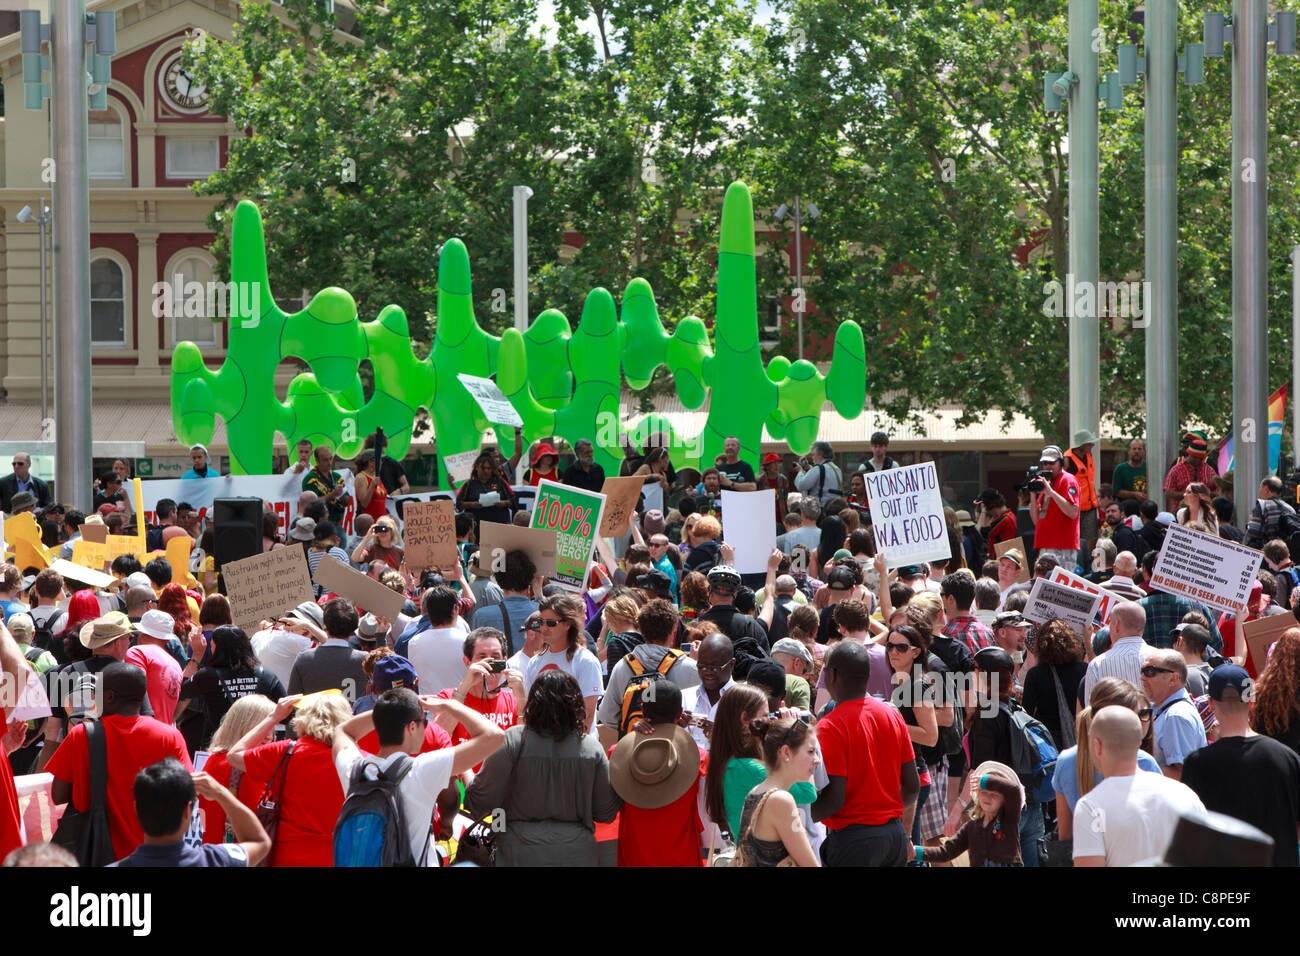 Occupy Perth protest held to coincide with the start of CHOGM 2011. Perth, Western Australia. - Stock Image